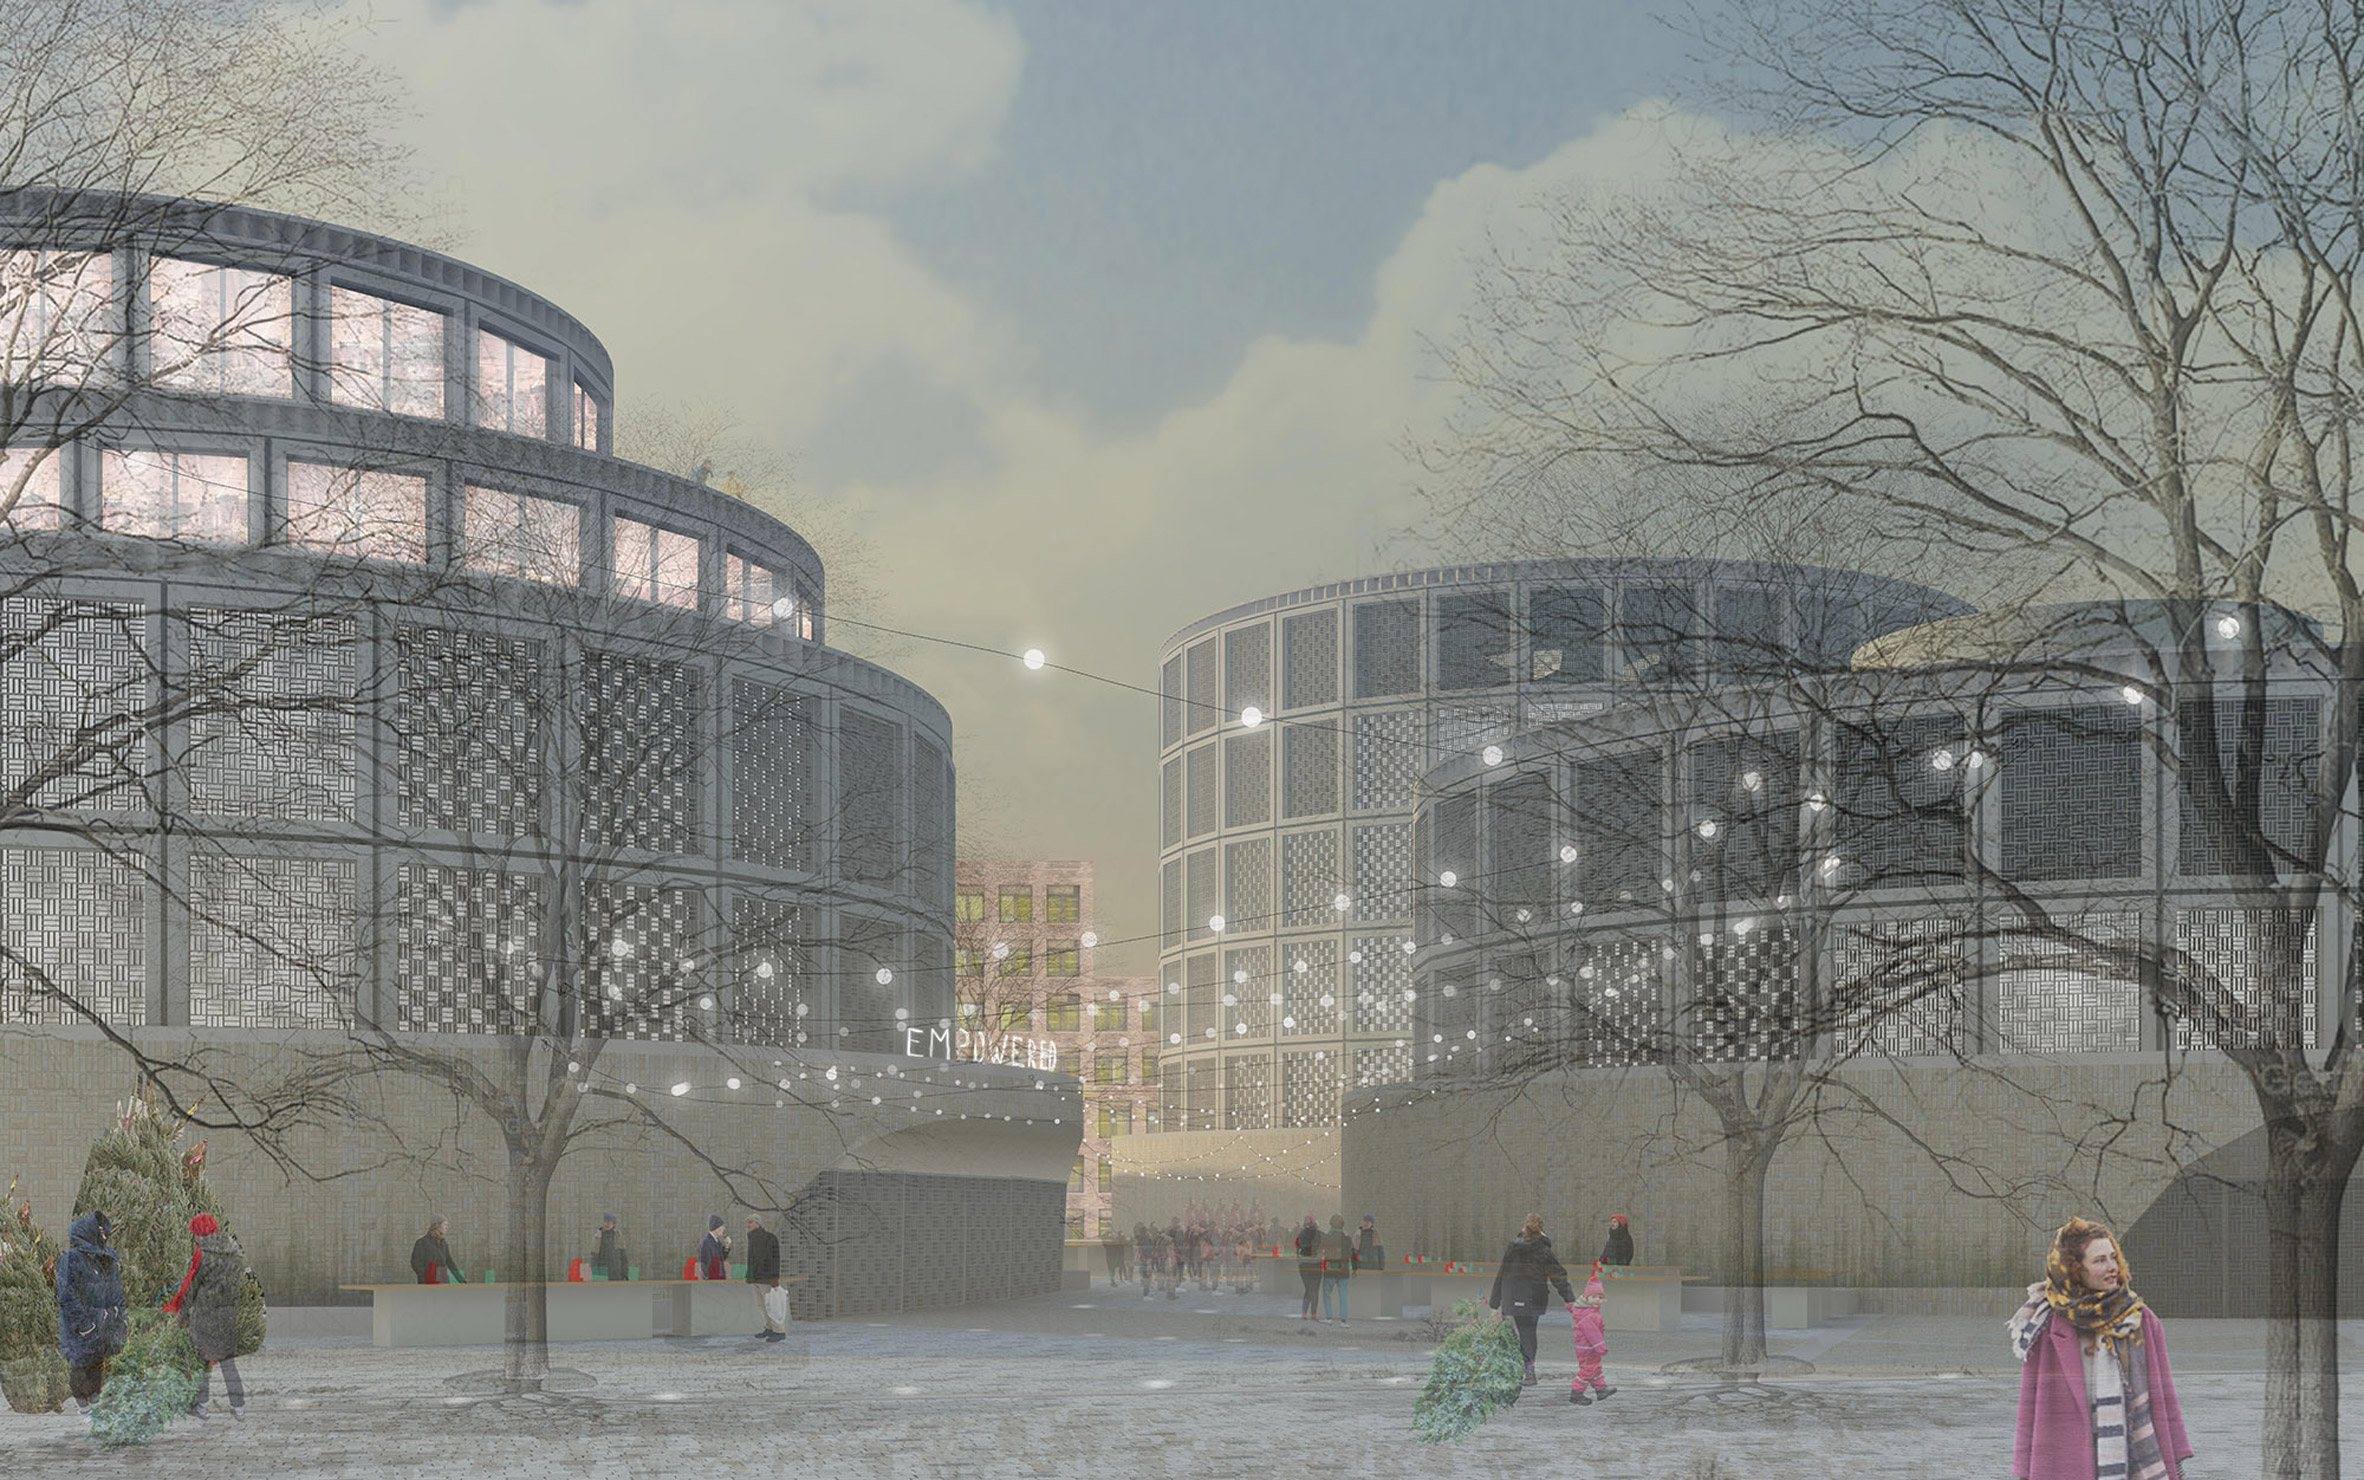 Six ideas to transform Britain's decommissioned gasholders make shortlist in RIBA competition